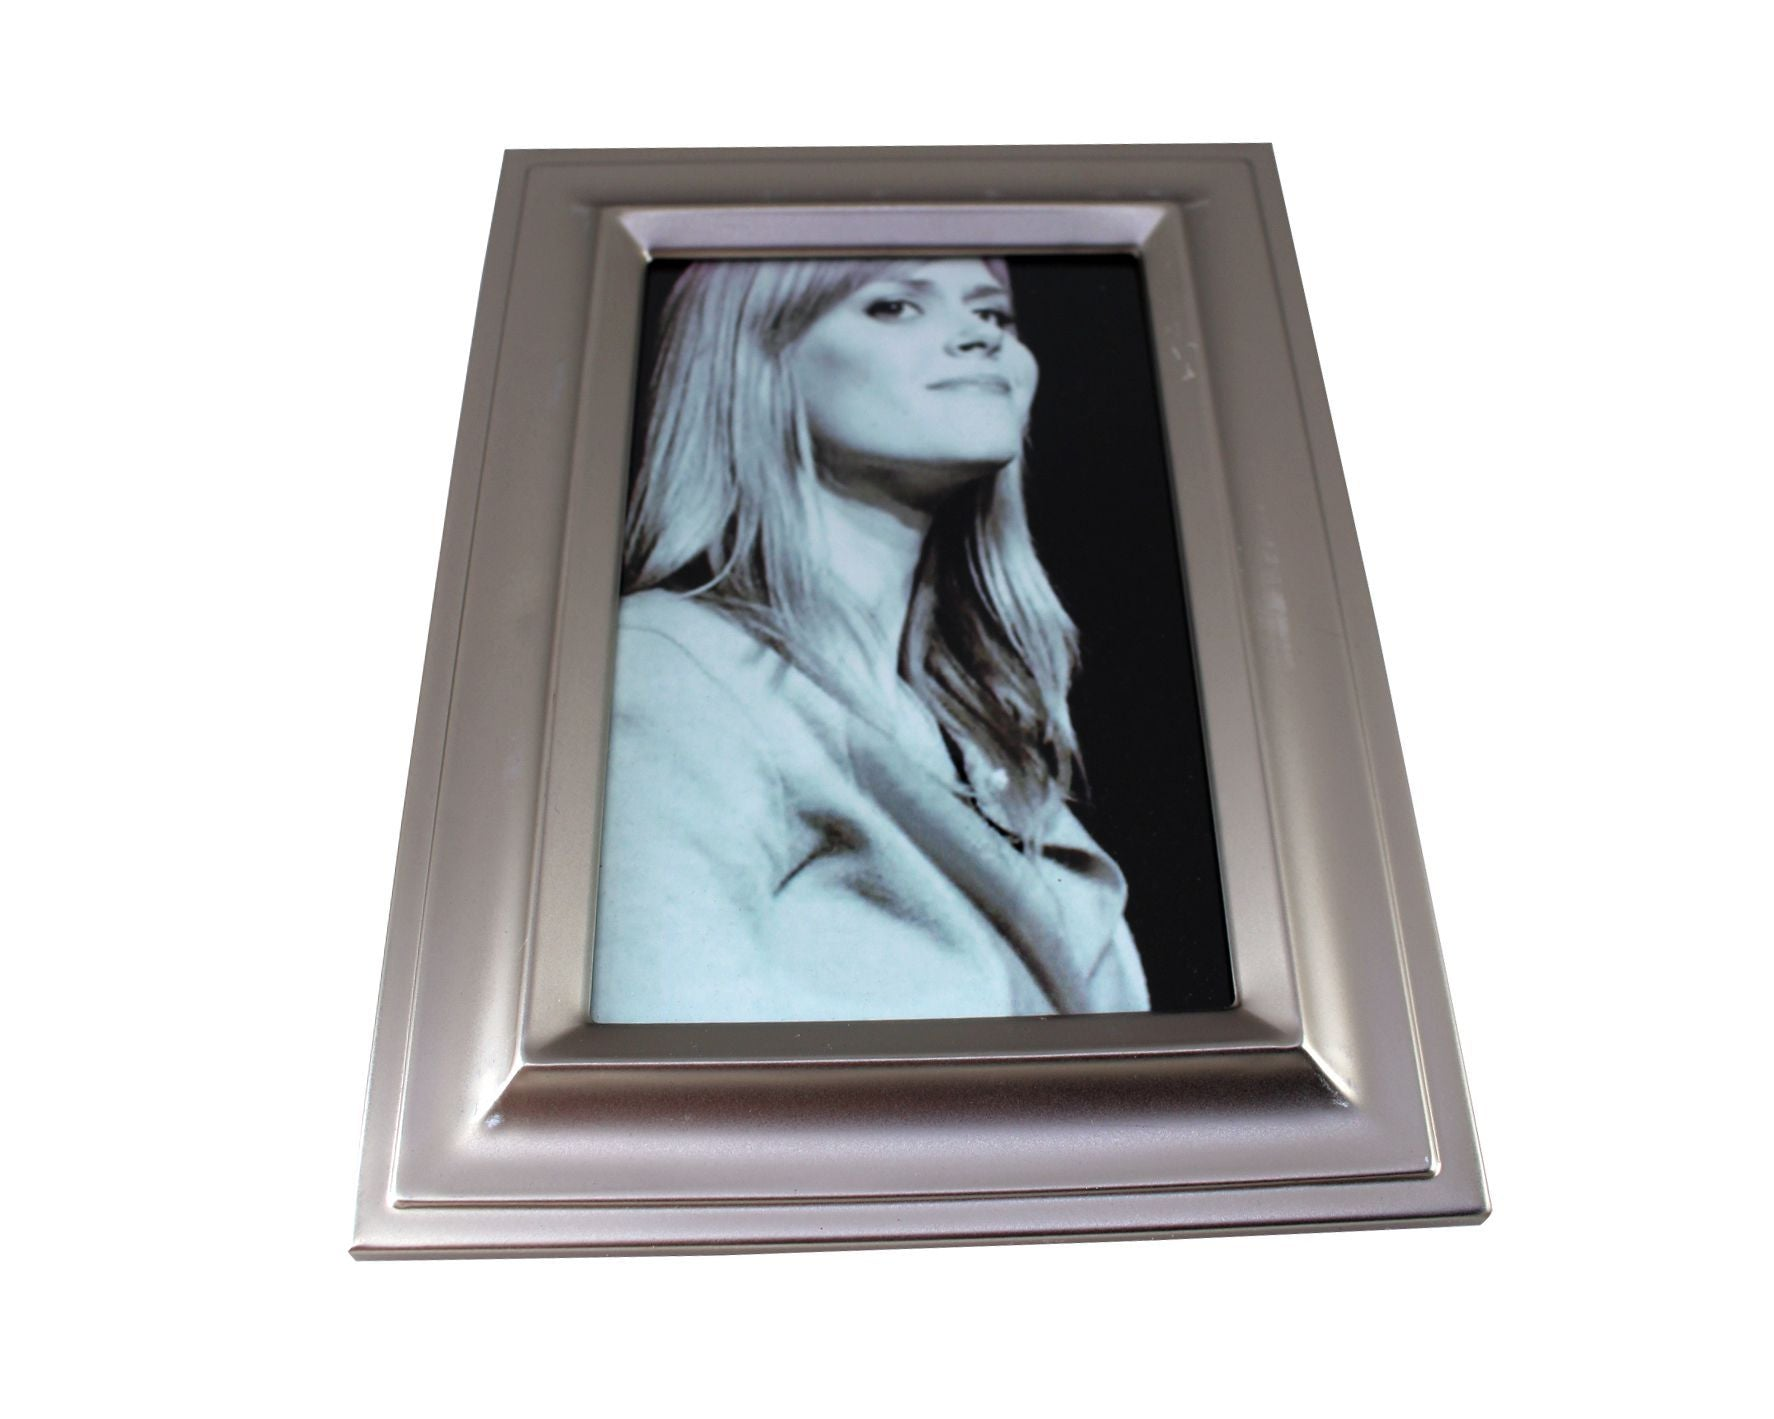 You're The Worst: Becca's Black & White Framed Photo